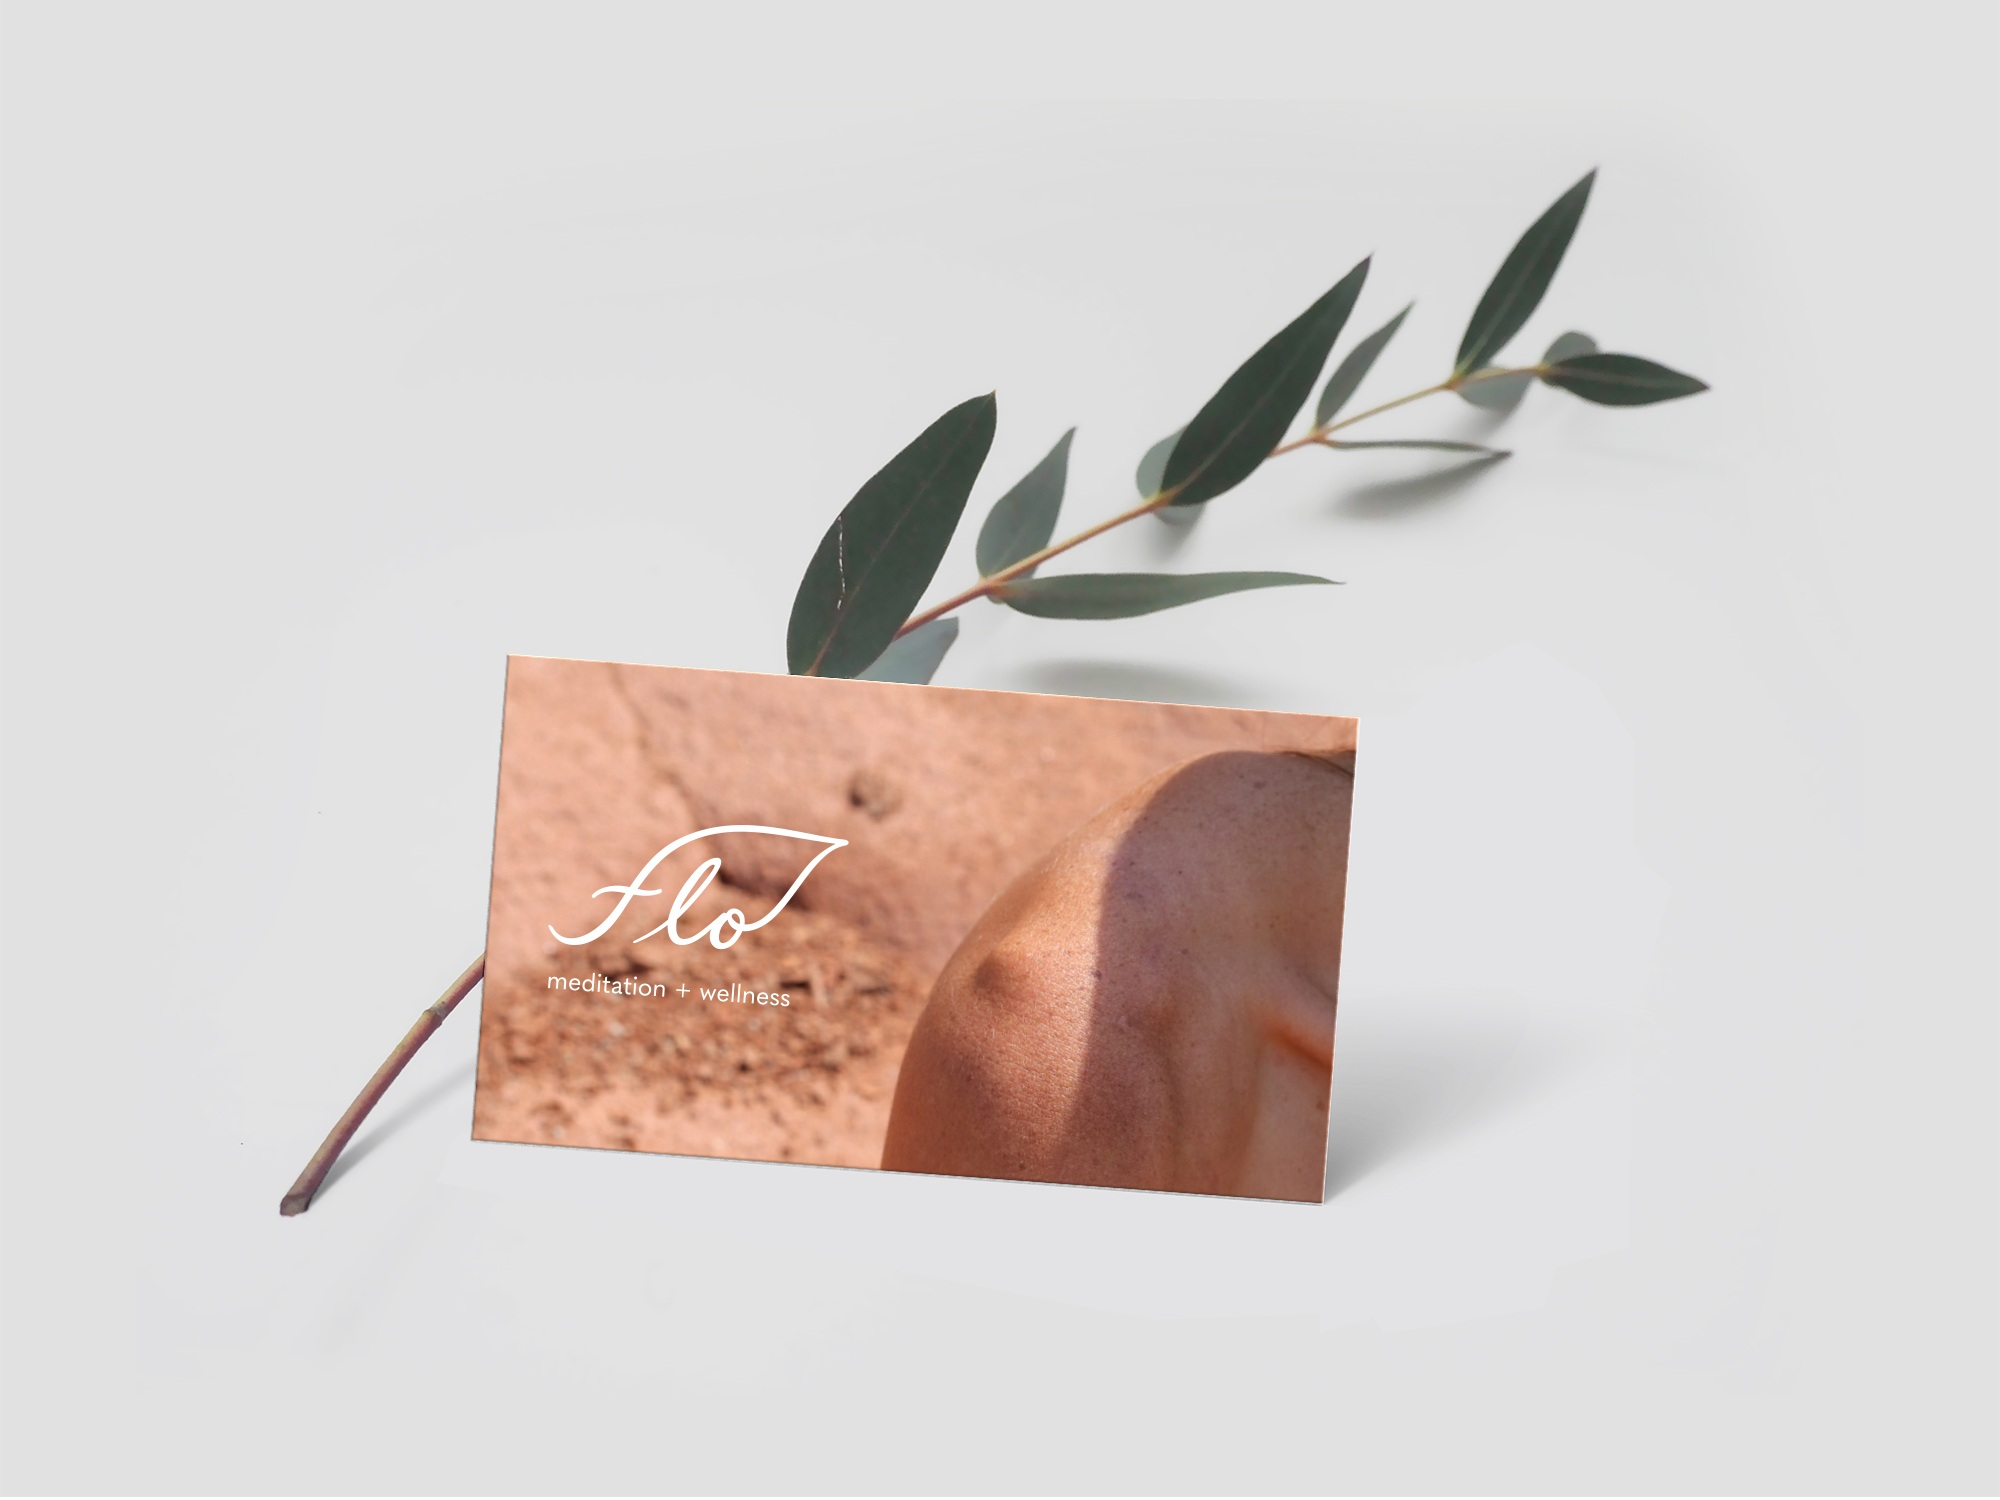 Branding by  Lizane Tan  with business card photography by Hafiia Mira